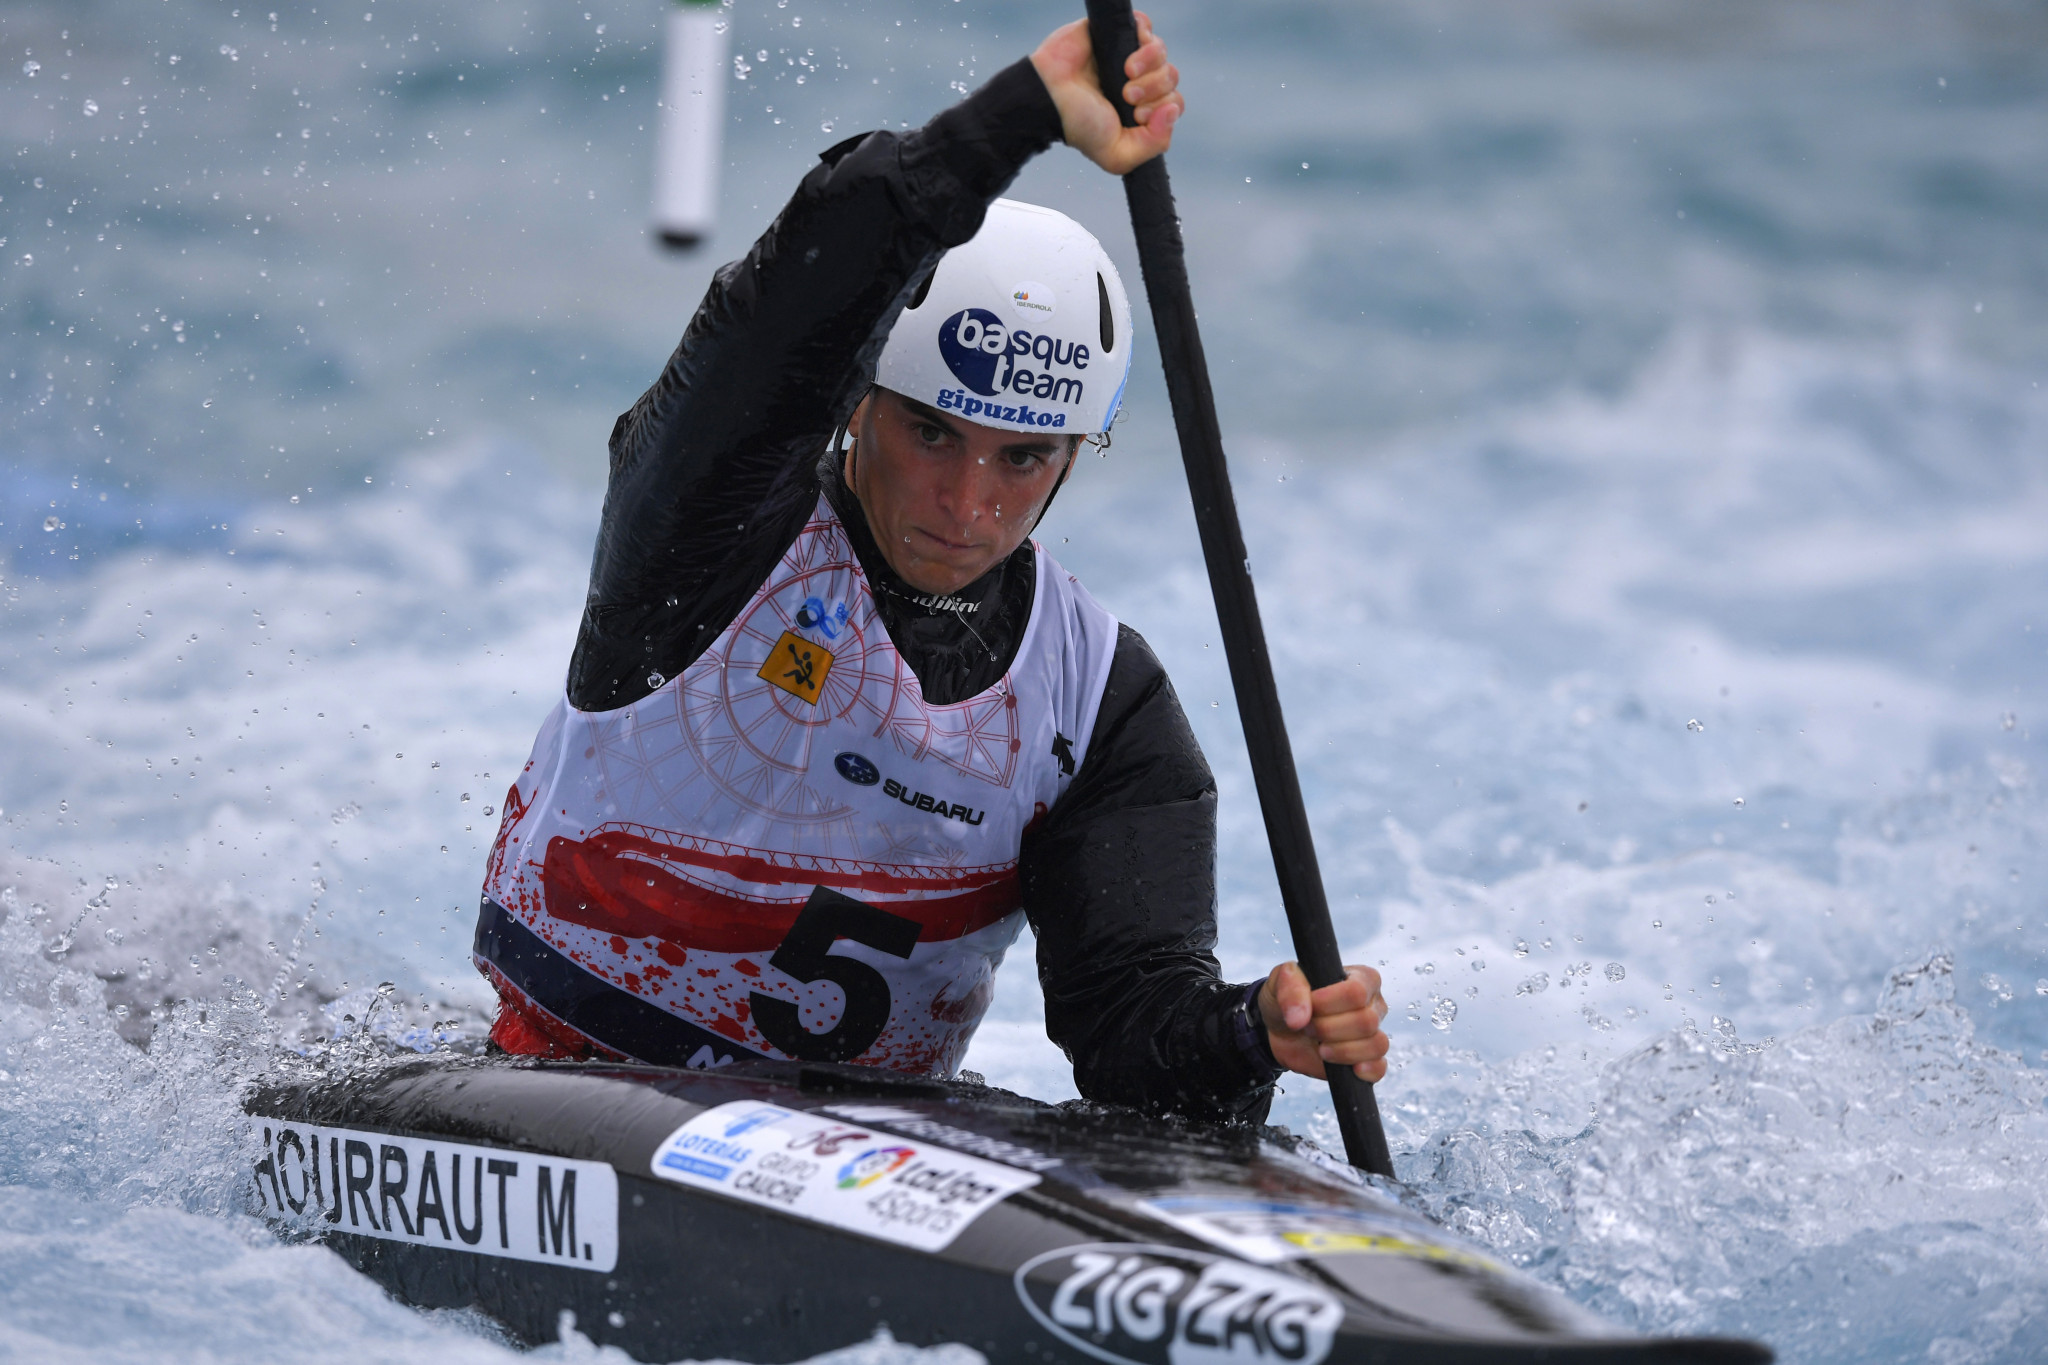 Olympic champions to feature at ICF Canoe Slalom World Cup in Pau